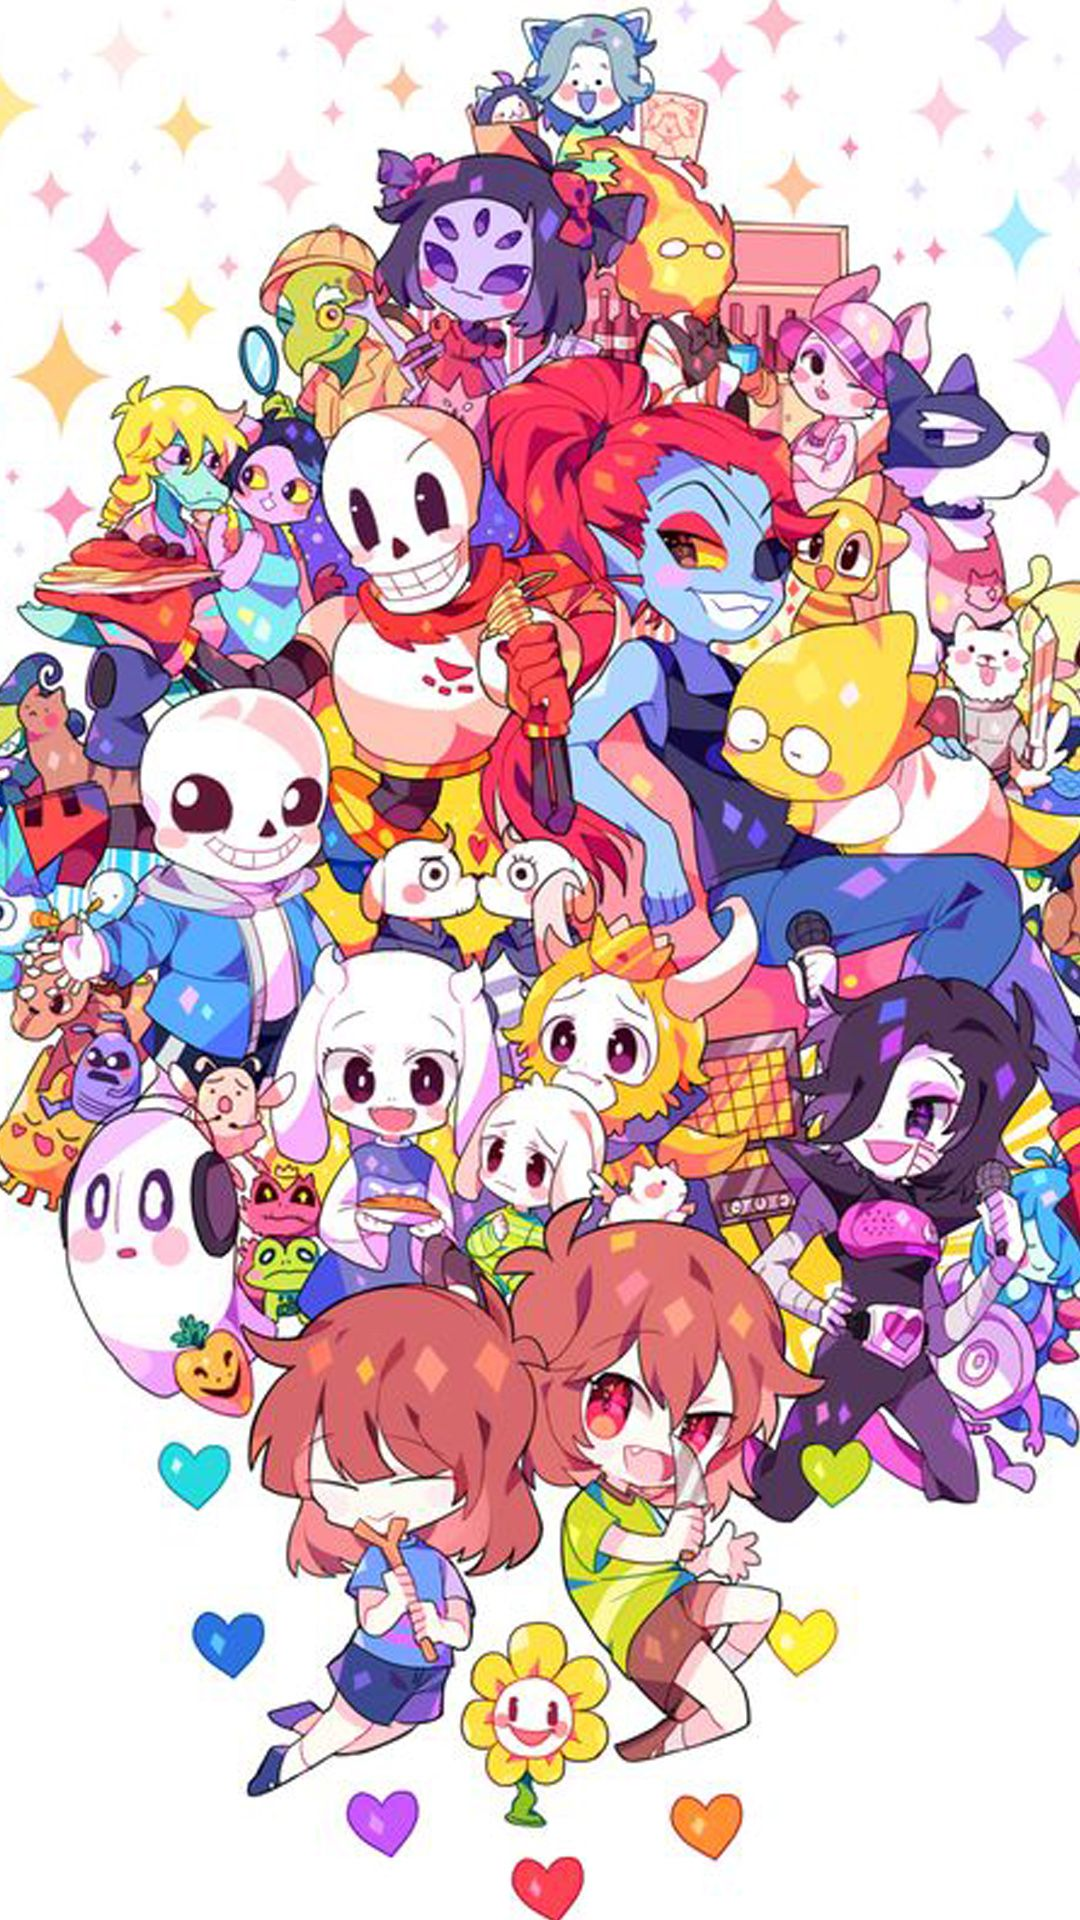 Undertale iphone wallpaper tumblr - Undertale Hd Iphone Wallpapers